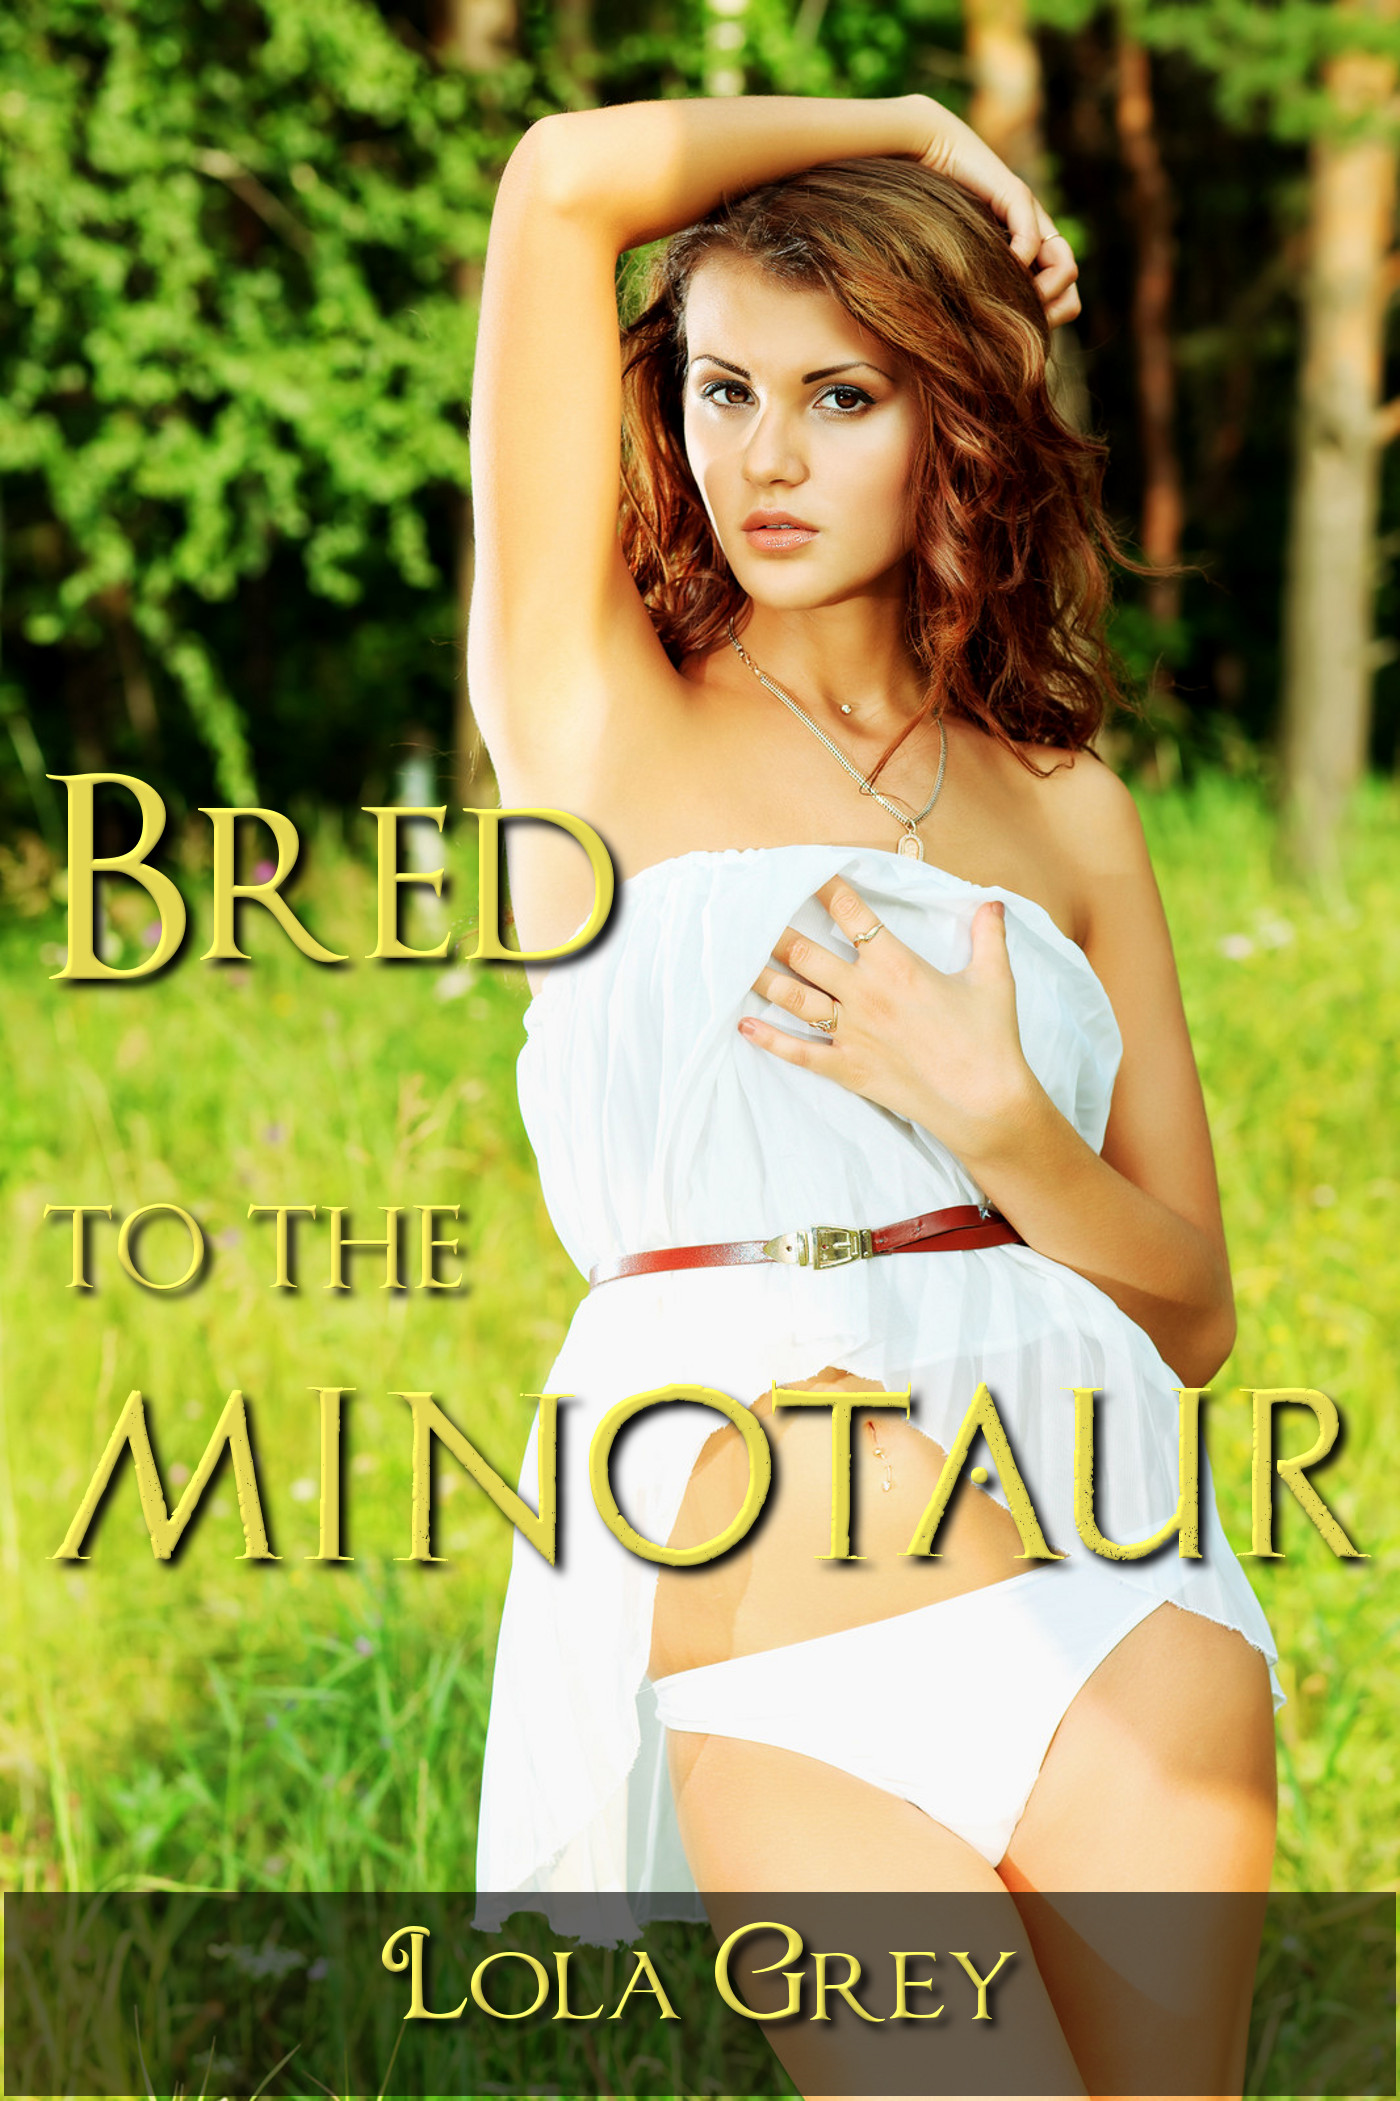 Bred to the Minotaur